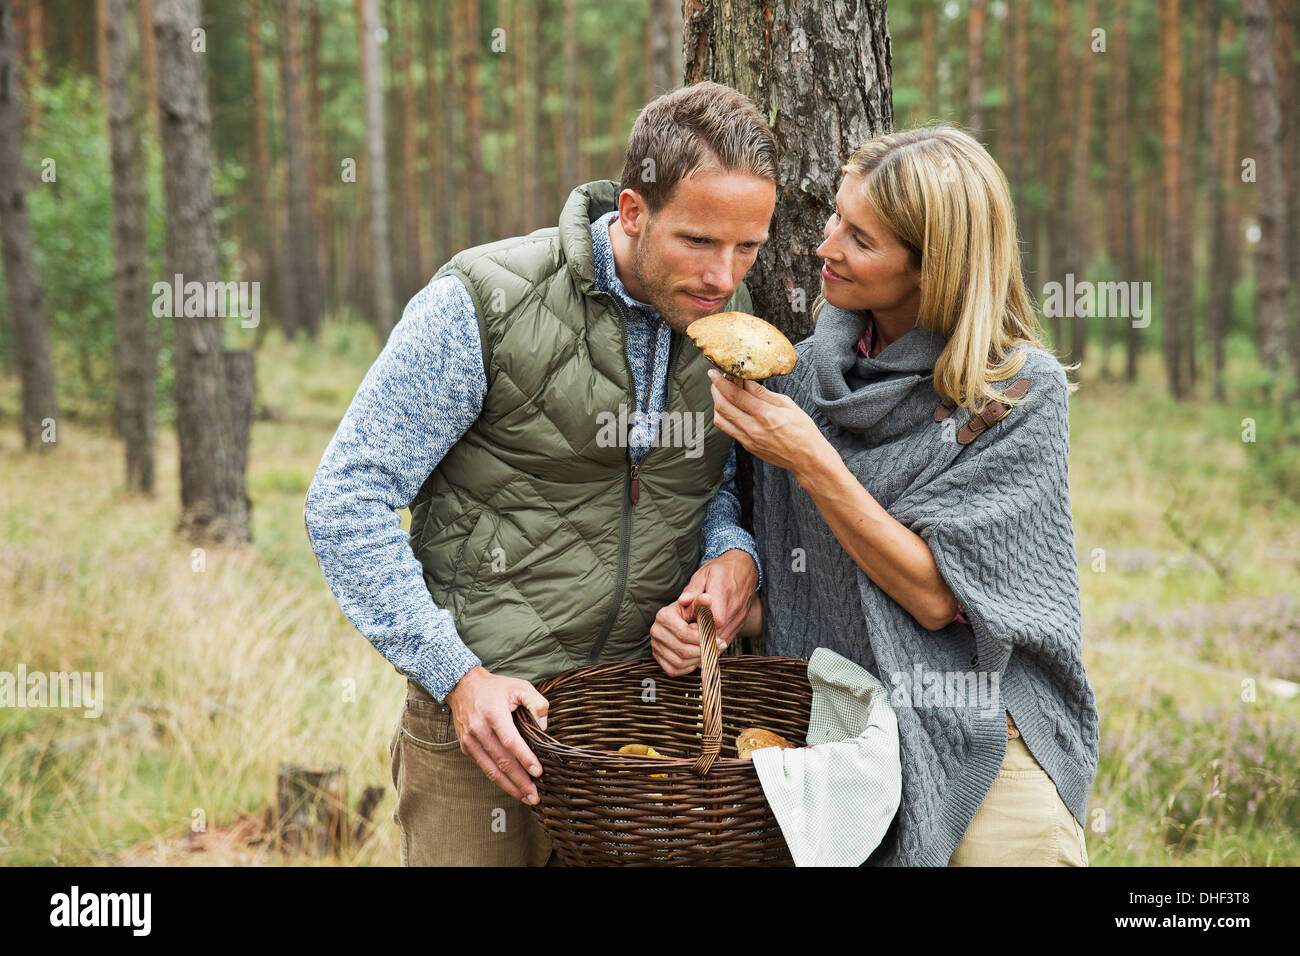 Mid adult couple foraging for mushrooms in forest - Stock Image